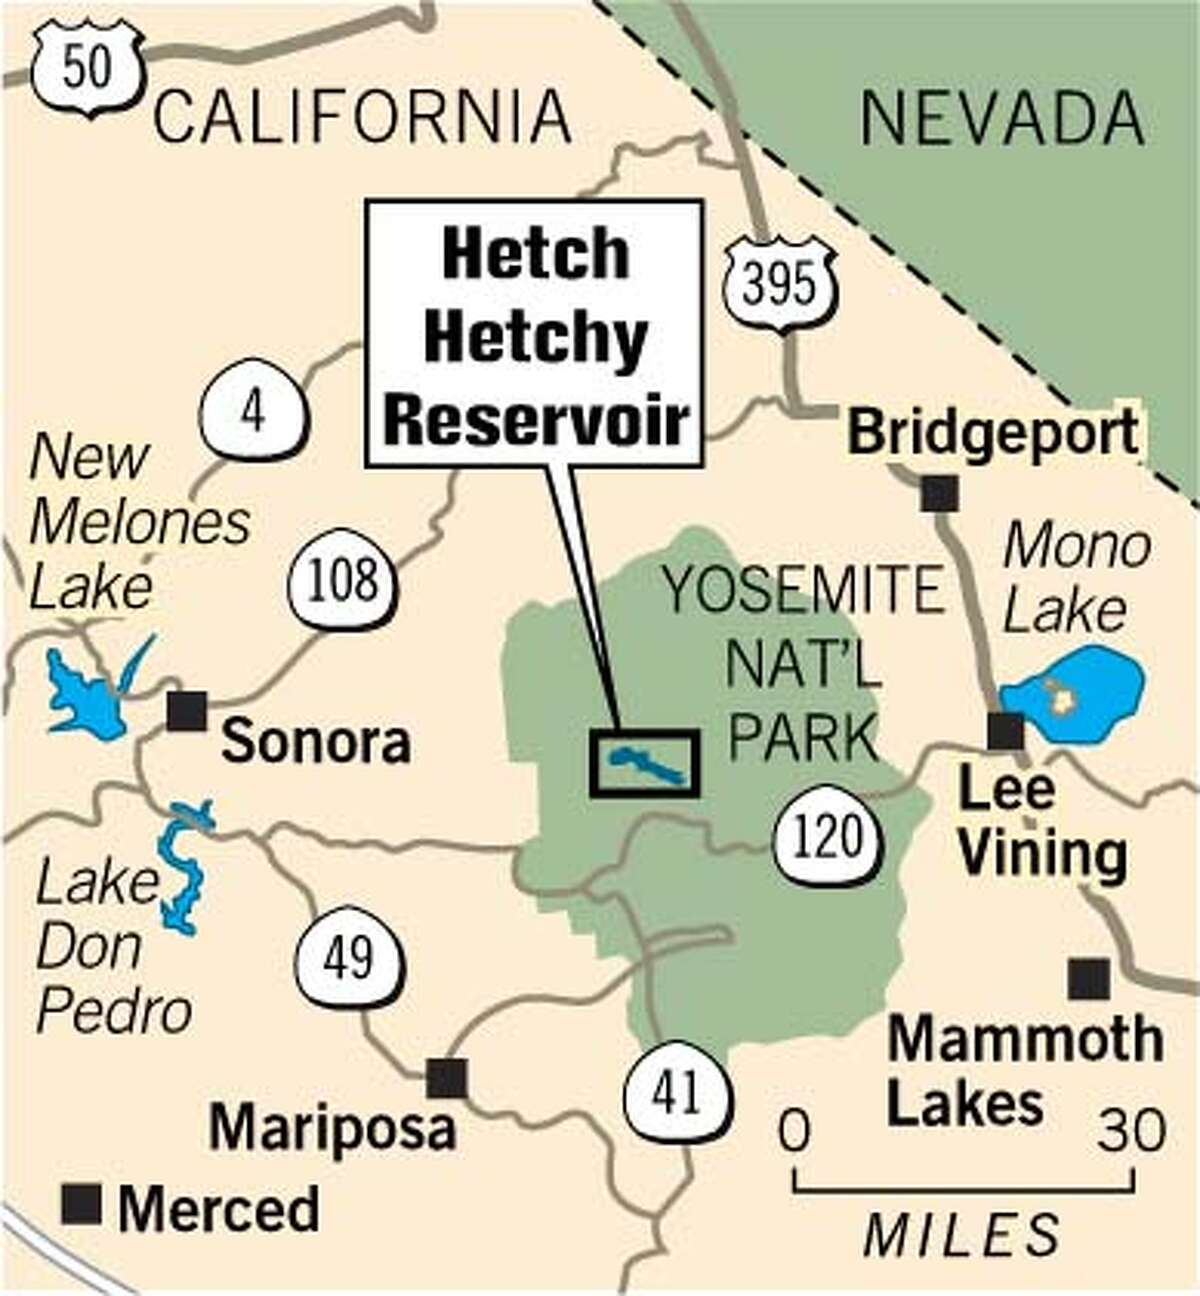 Hetch Hetchy Reservoir. Chronicle Graphic